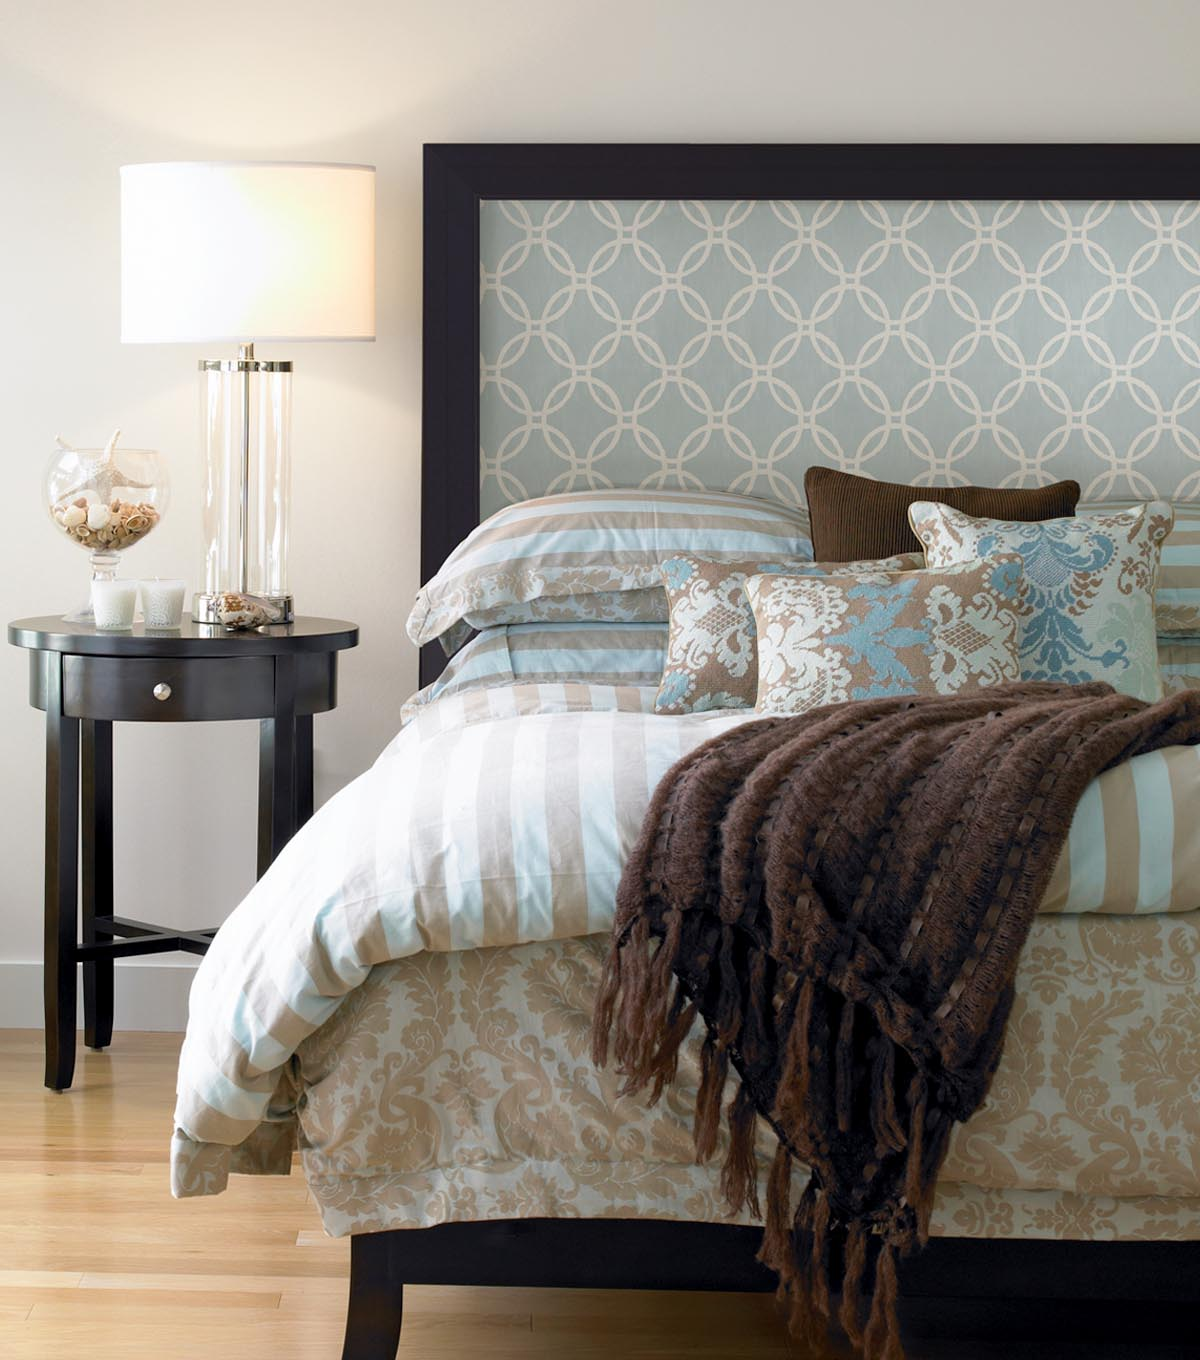 Fresh Design Ideas: Creative Ways To Use Wallpaper In Your